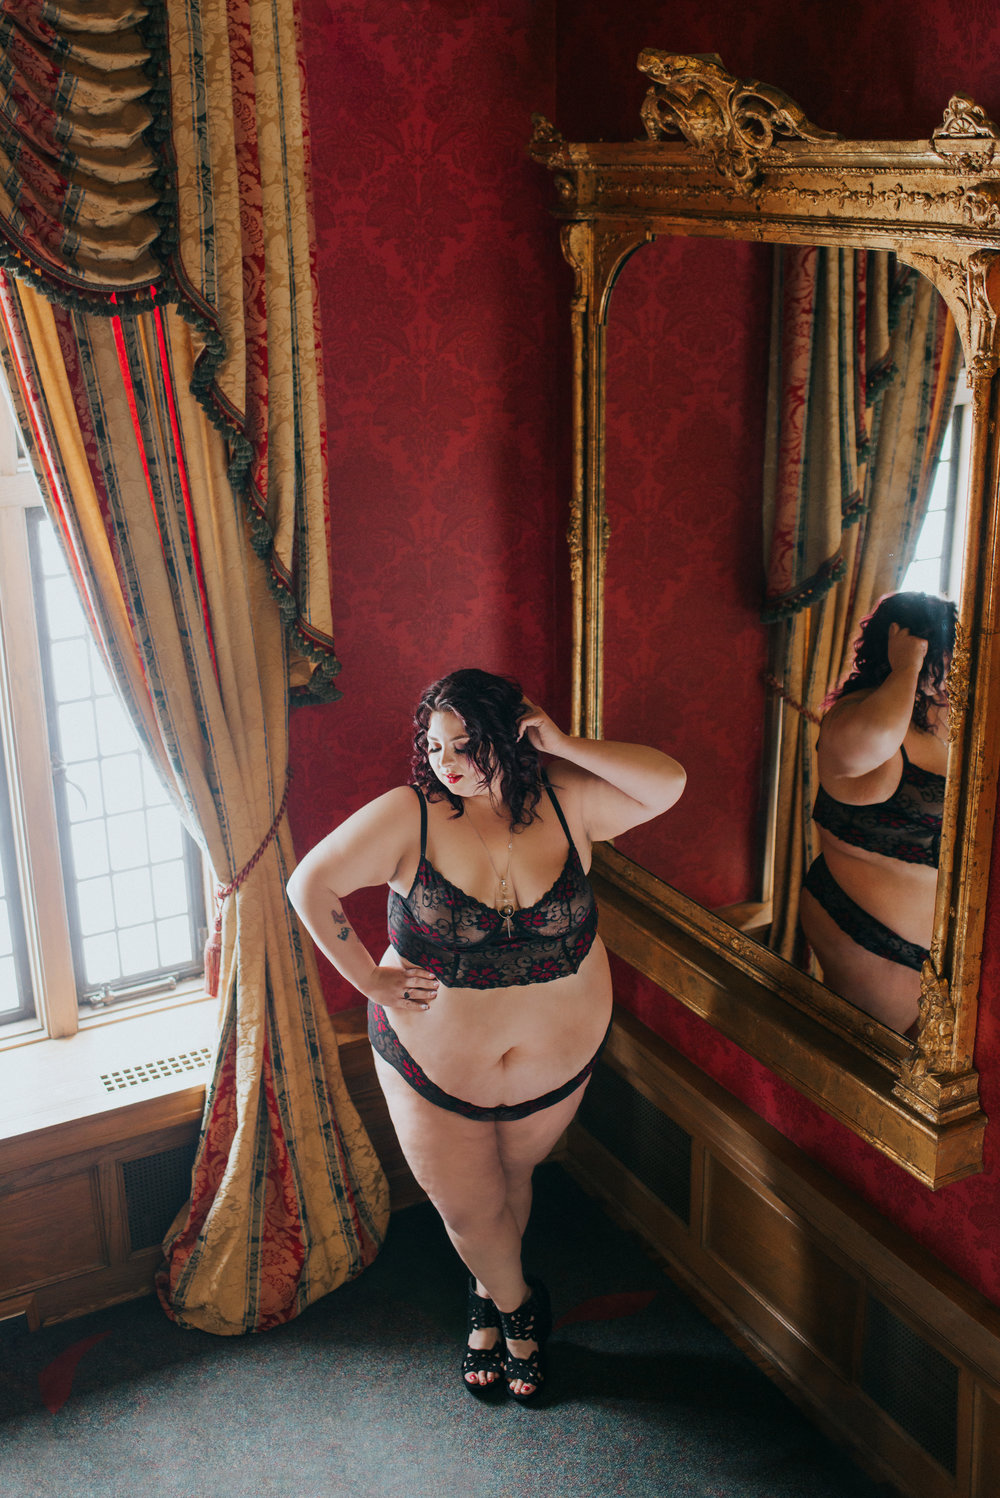 Jewelz-Journey-Bob-Rumball-Manor-Scandaleuyse-photography-Boudoir-Toronto-12.jpg